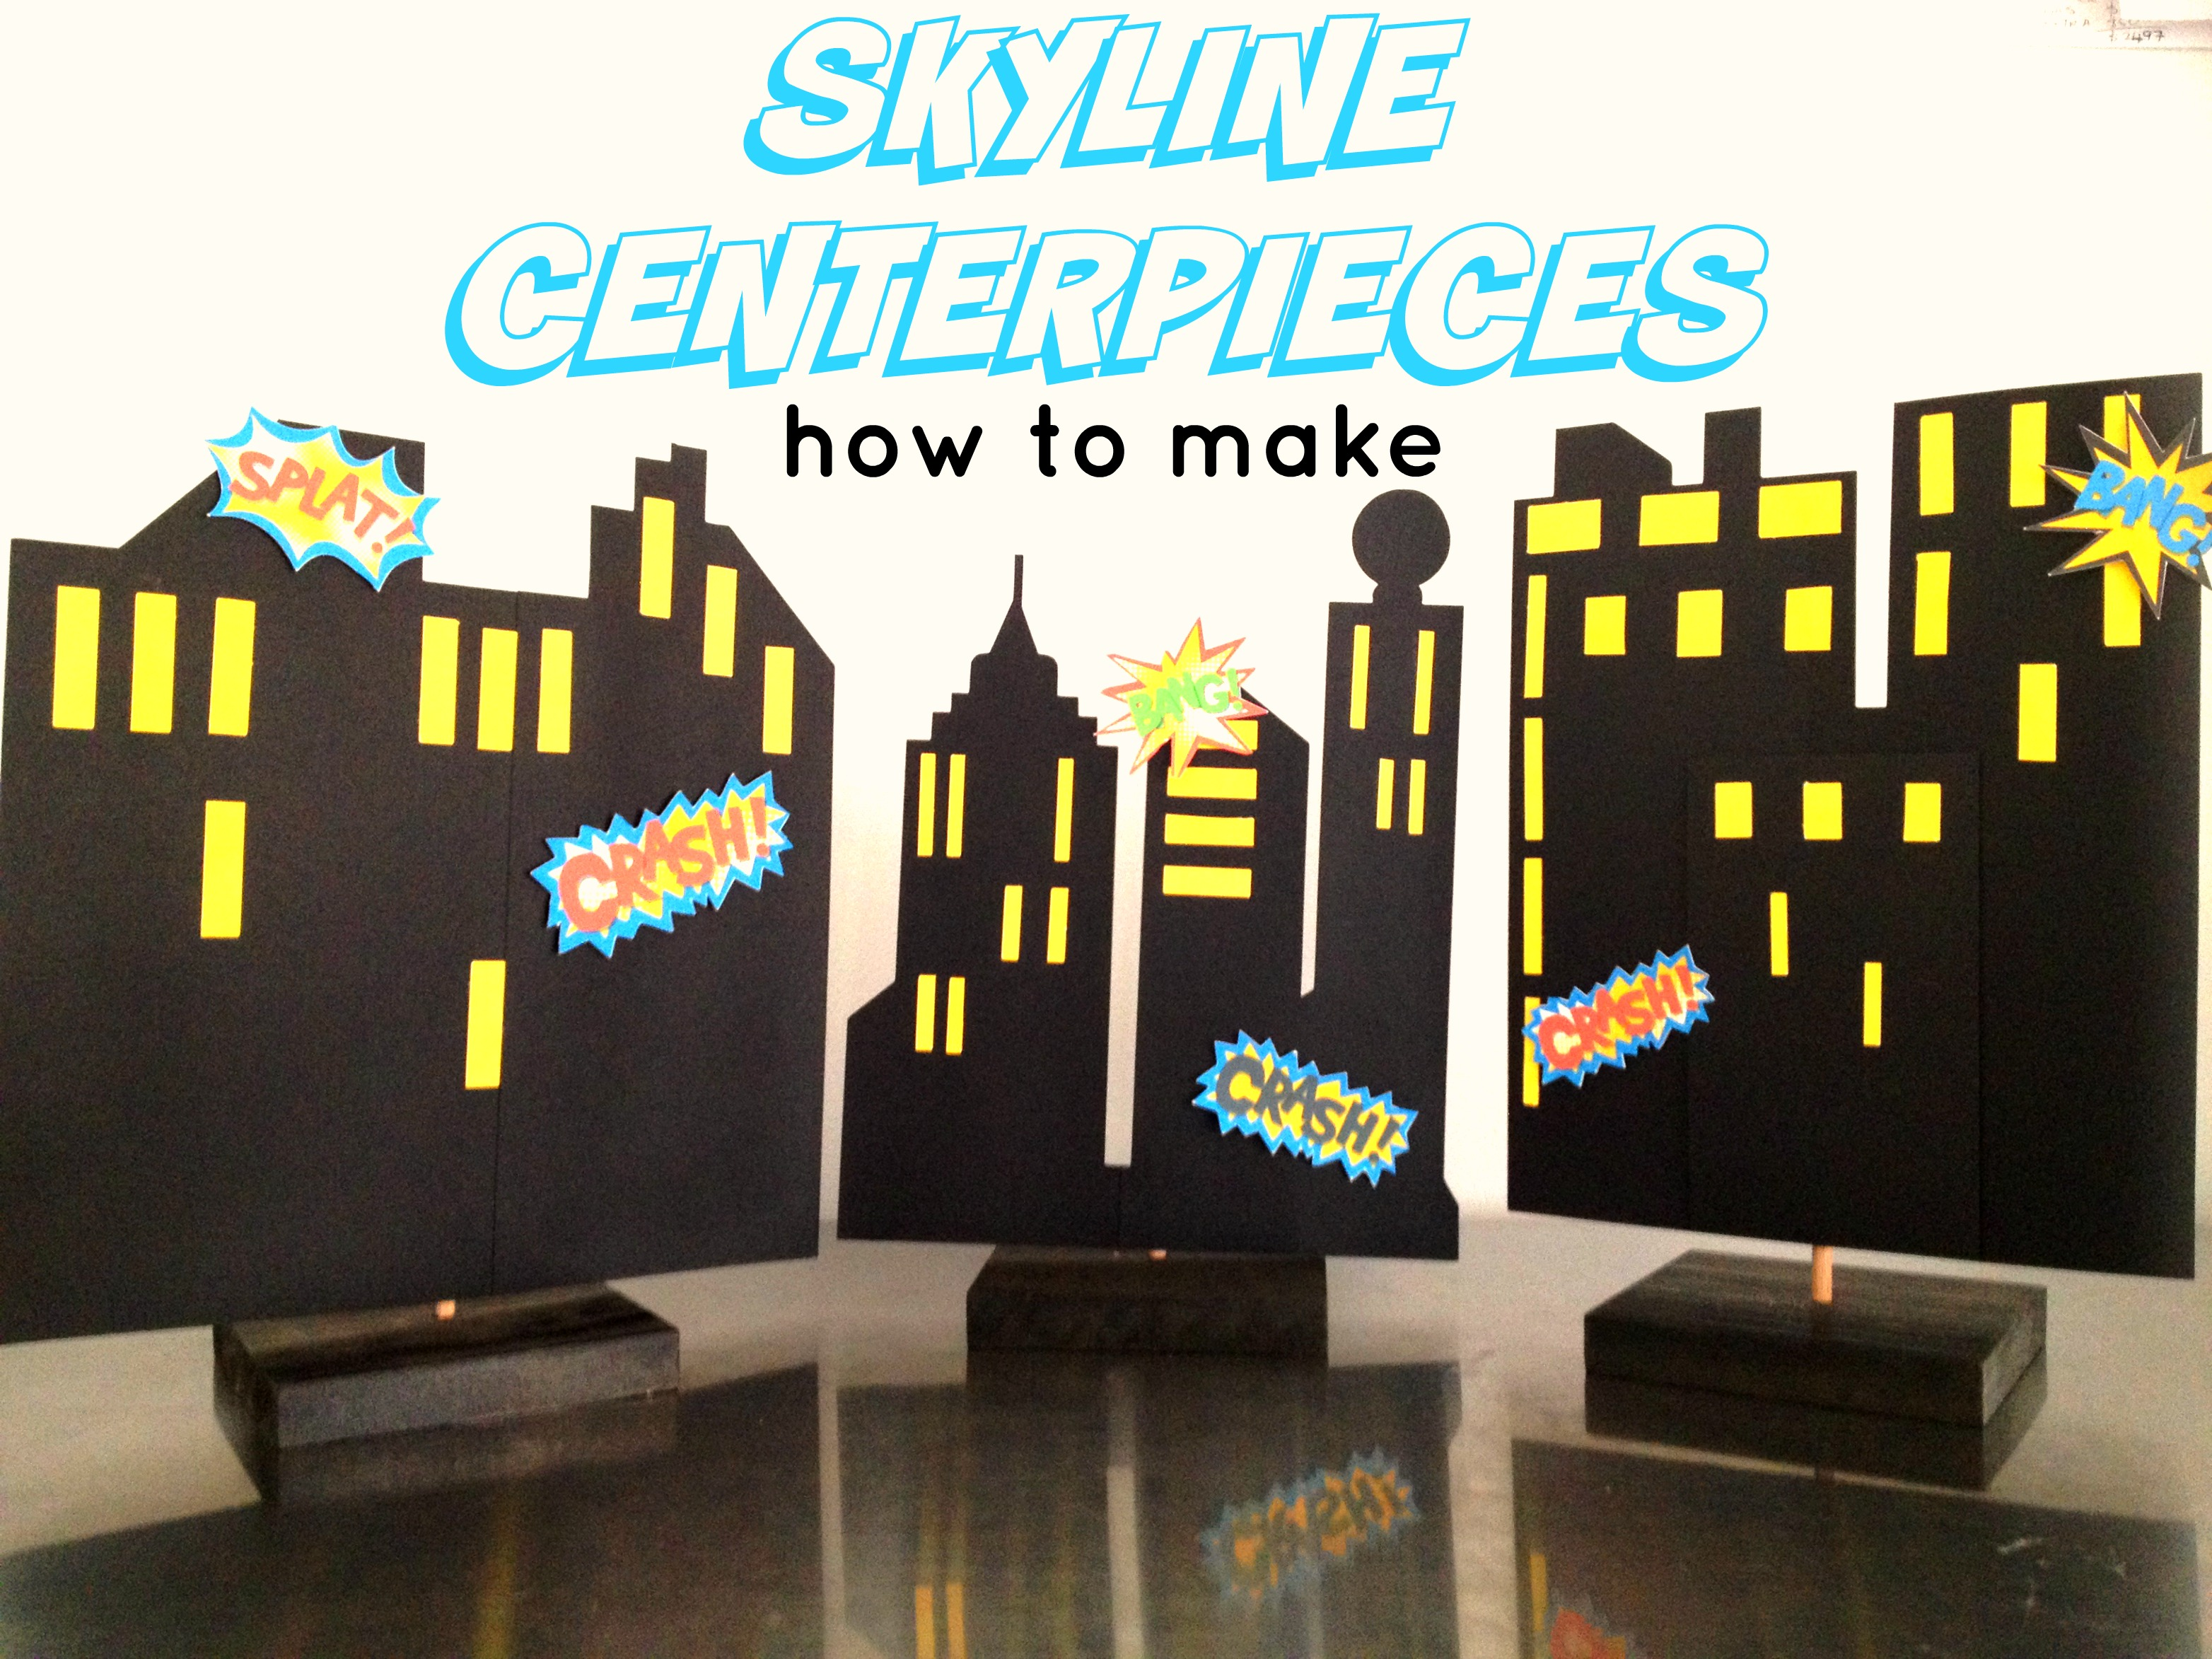 Skyline centerpiece how to make youtube